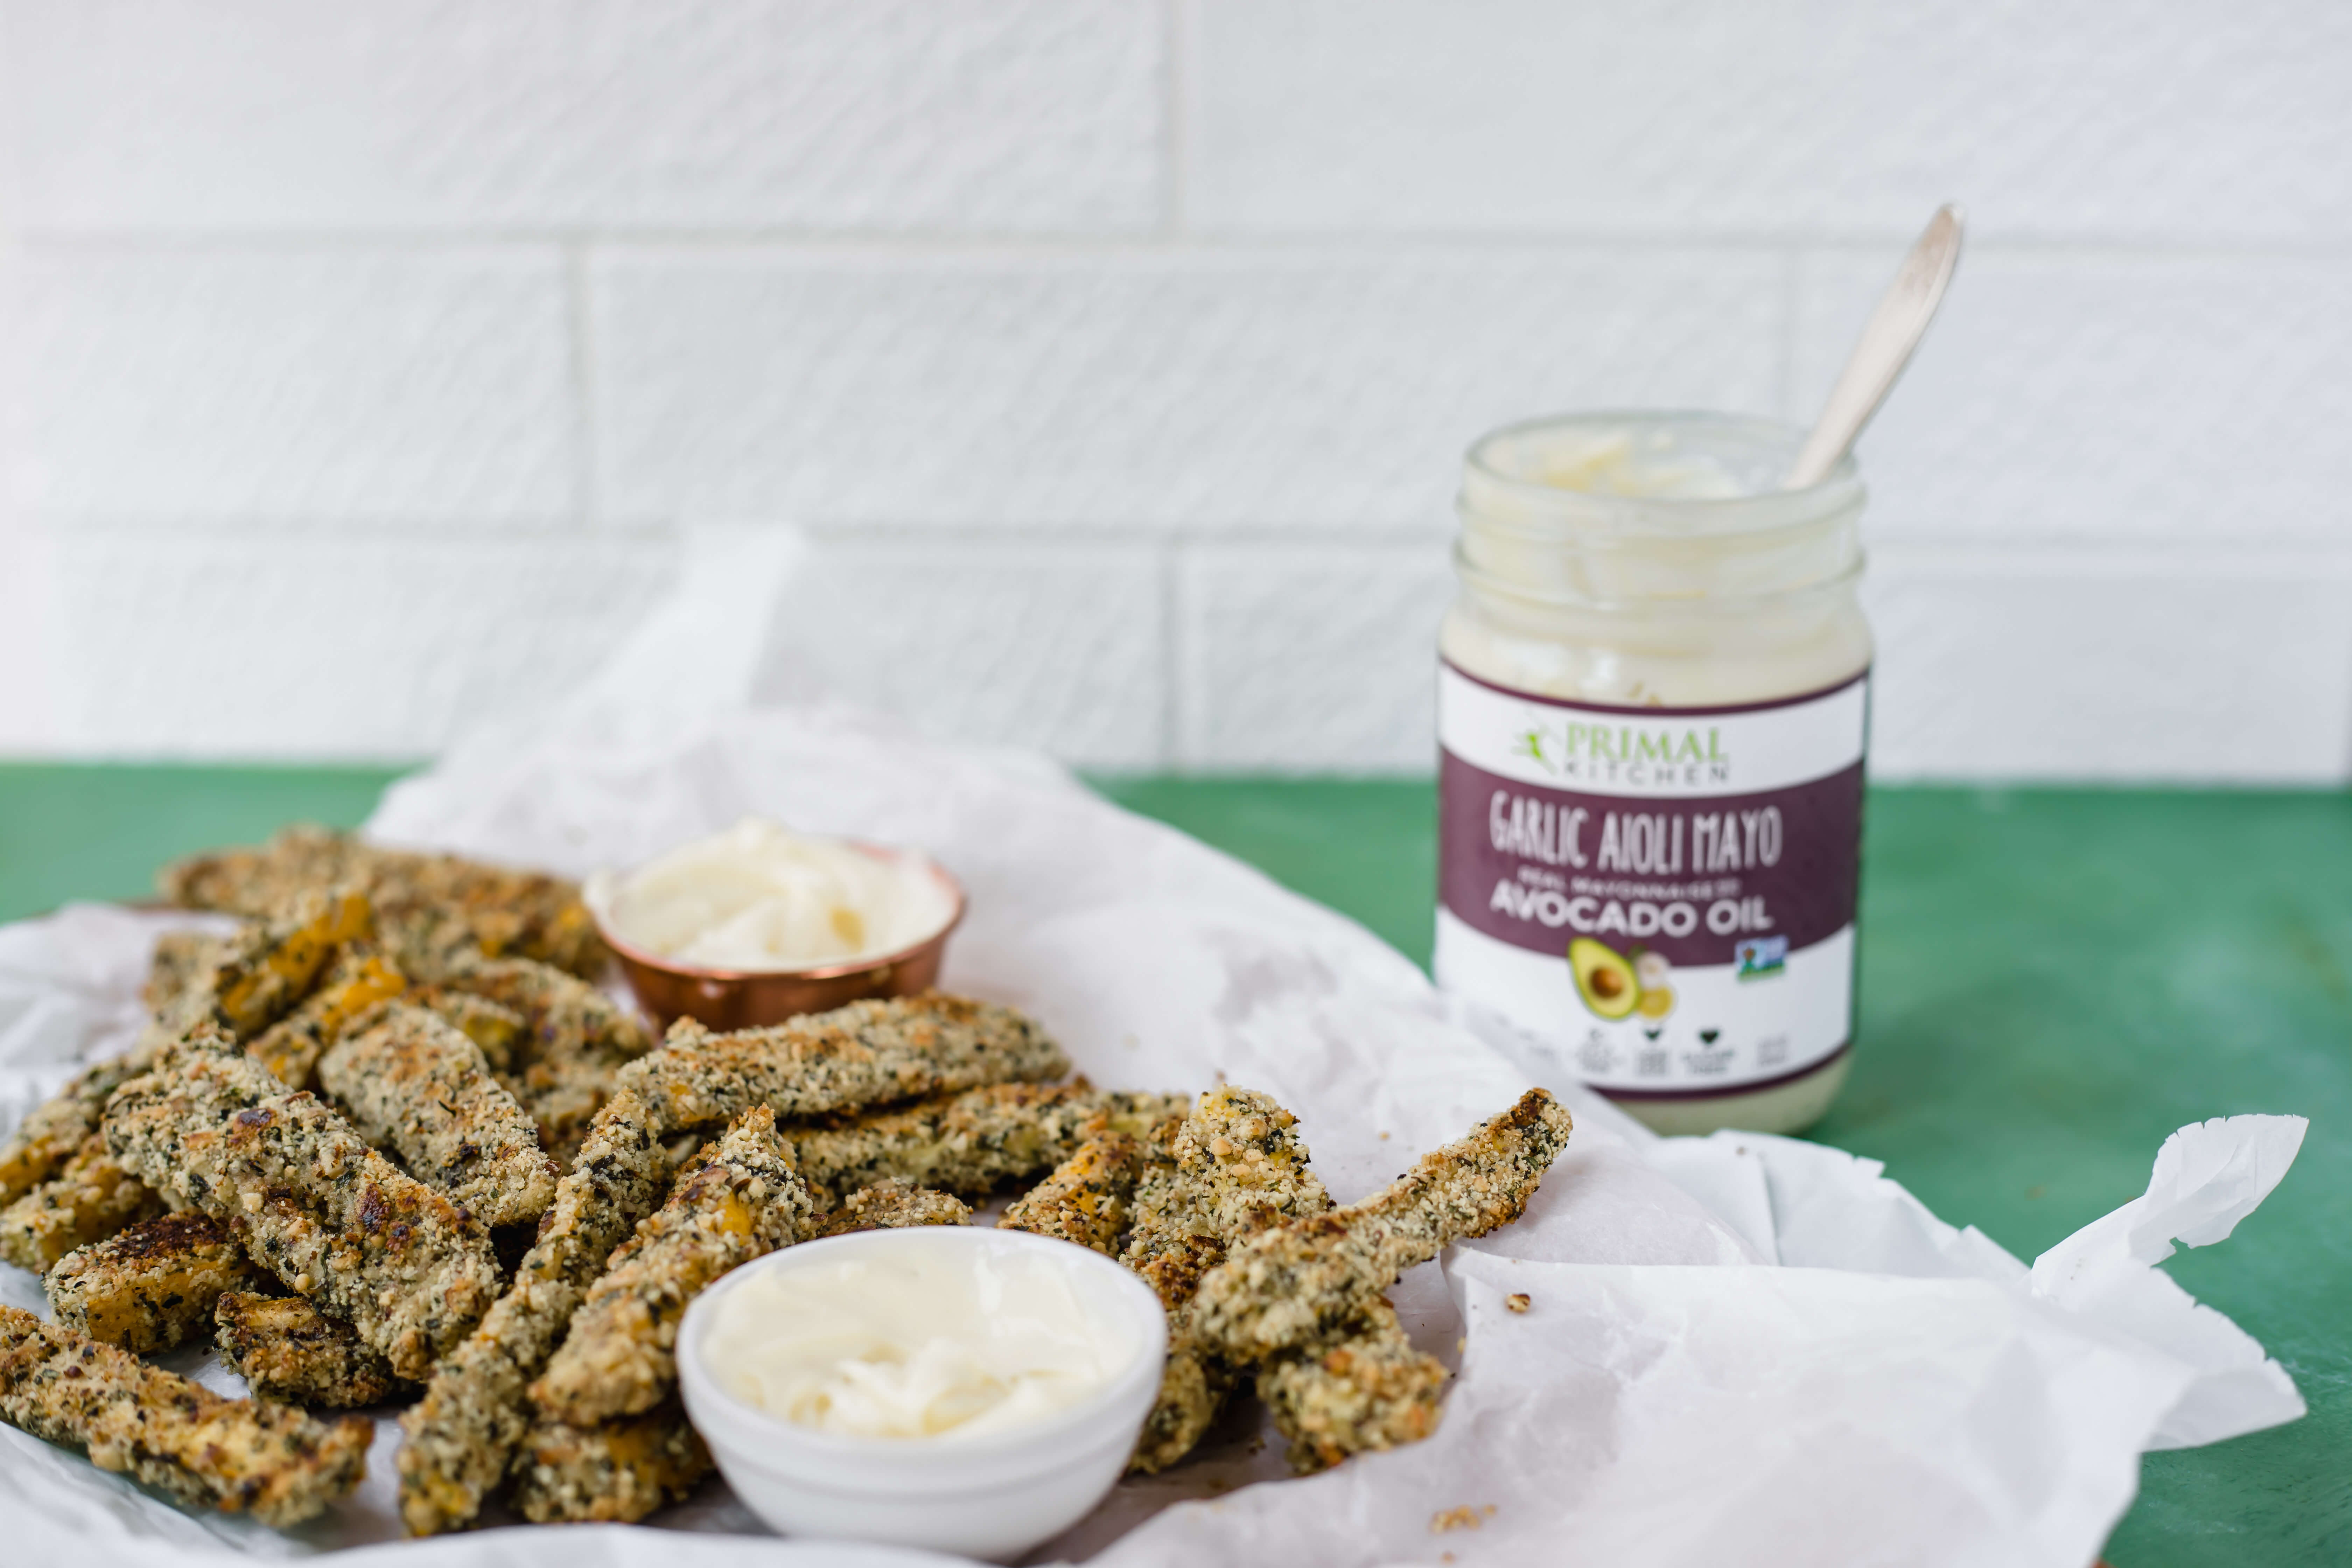 Oven Baked Zucchini Fries with Garlic Aioli